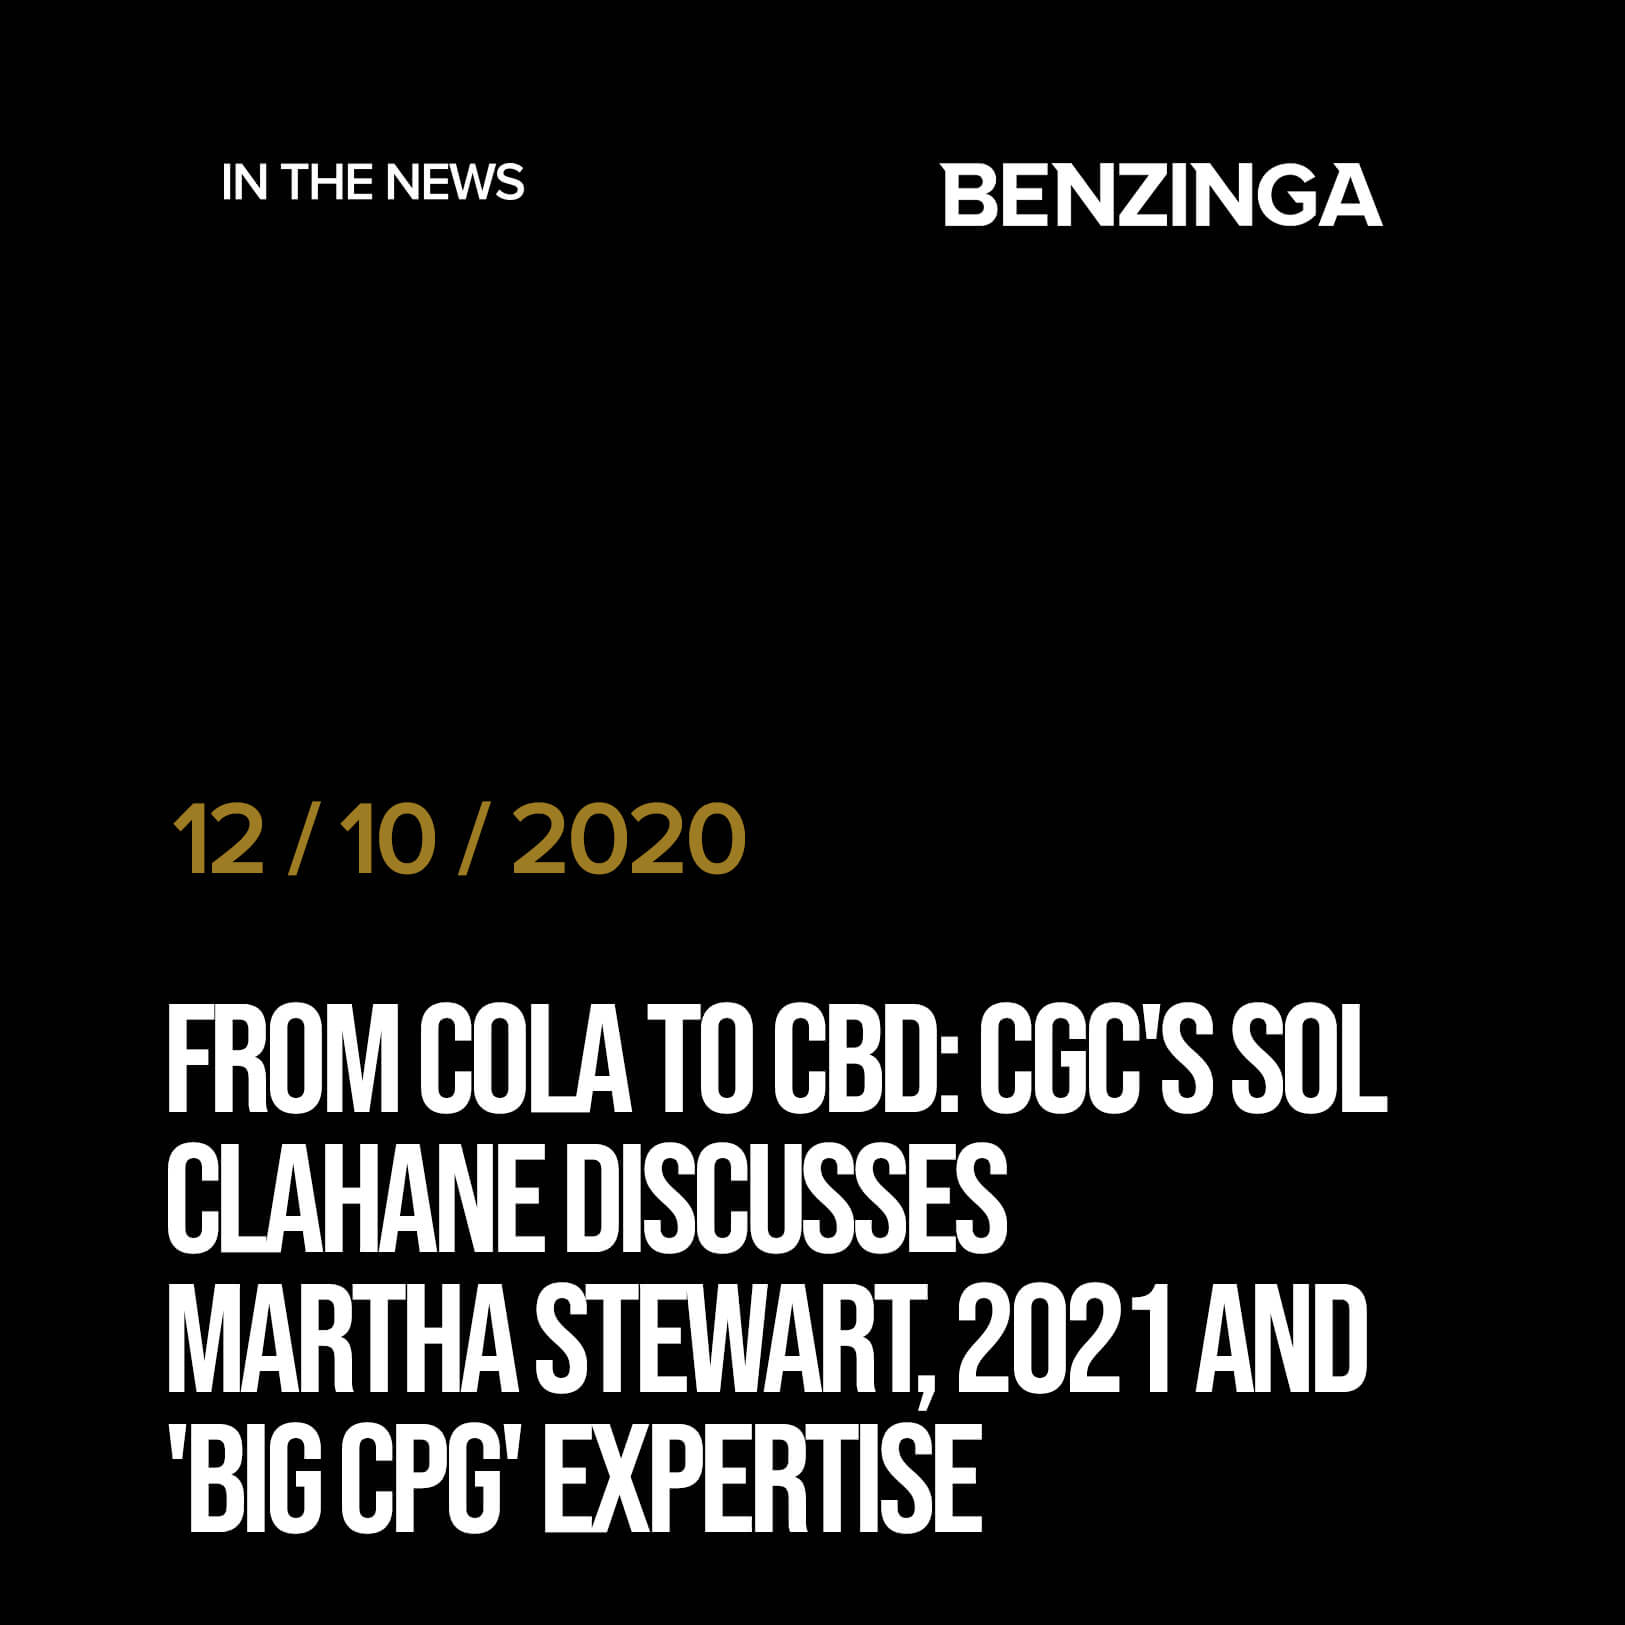 From Cola To CBD: CGC's Sol Clahane Discusses Martha Stewart, 2021 And 'Big CPG' Expertise